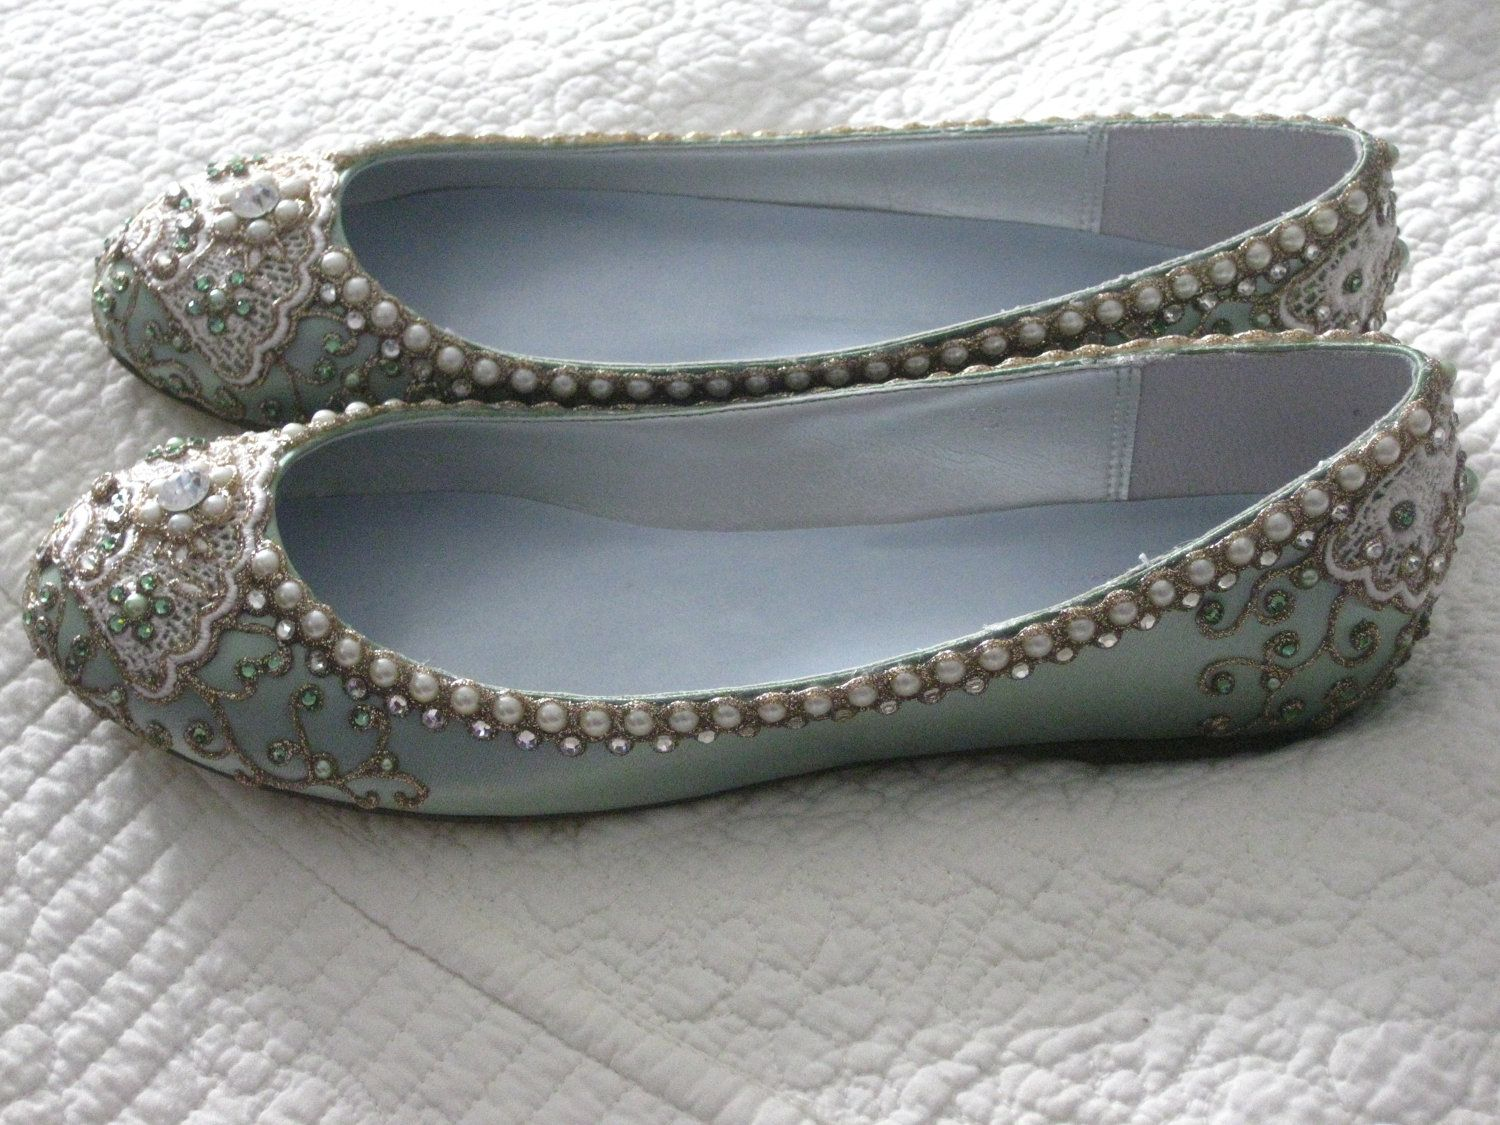 15bf11326f29 Cinderella s Slipper Bridal Ballet Flats Wedding Shoes - Any Size - Pick  your own shoe color and crystal color.  245.00